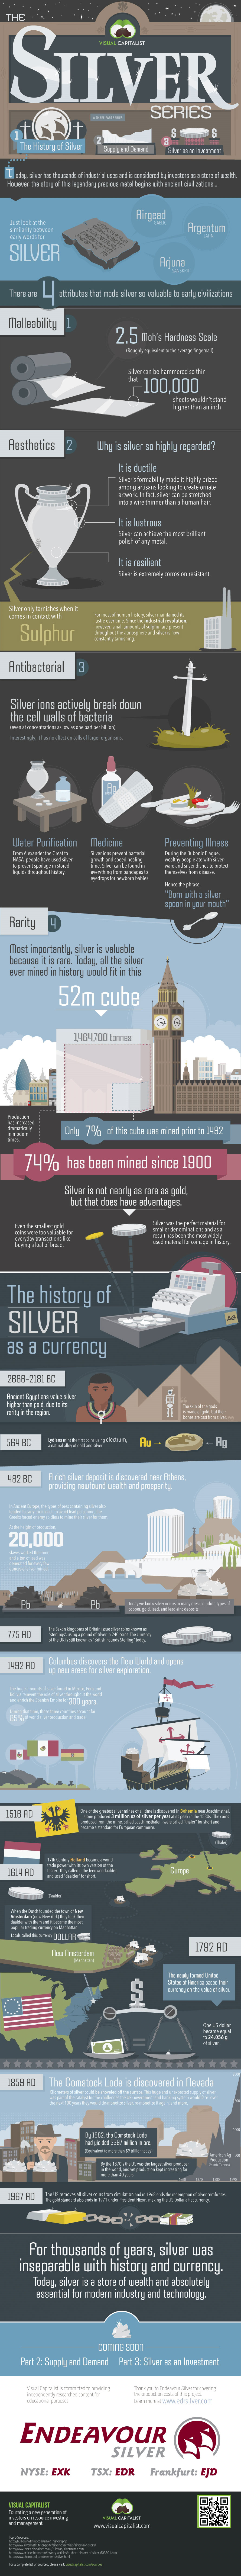 Silver Over Time-Infographic